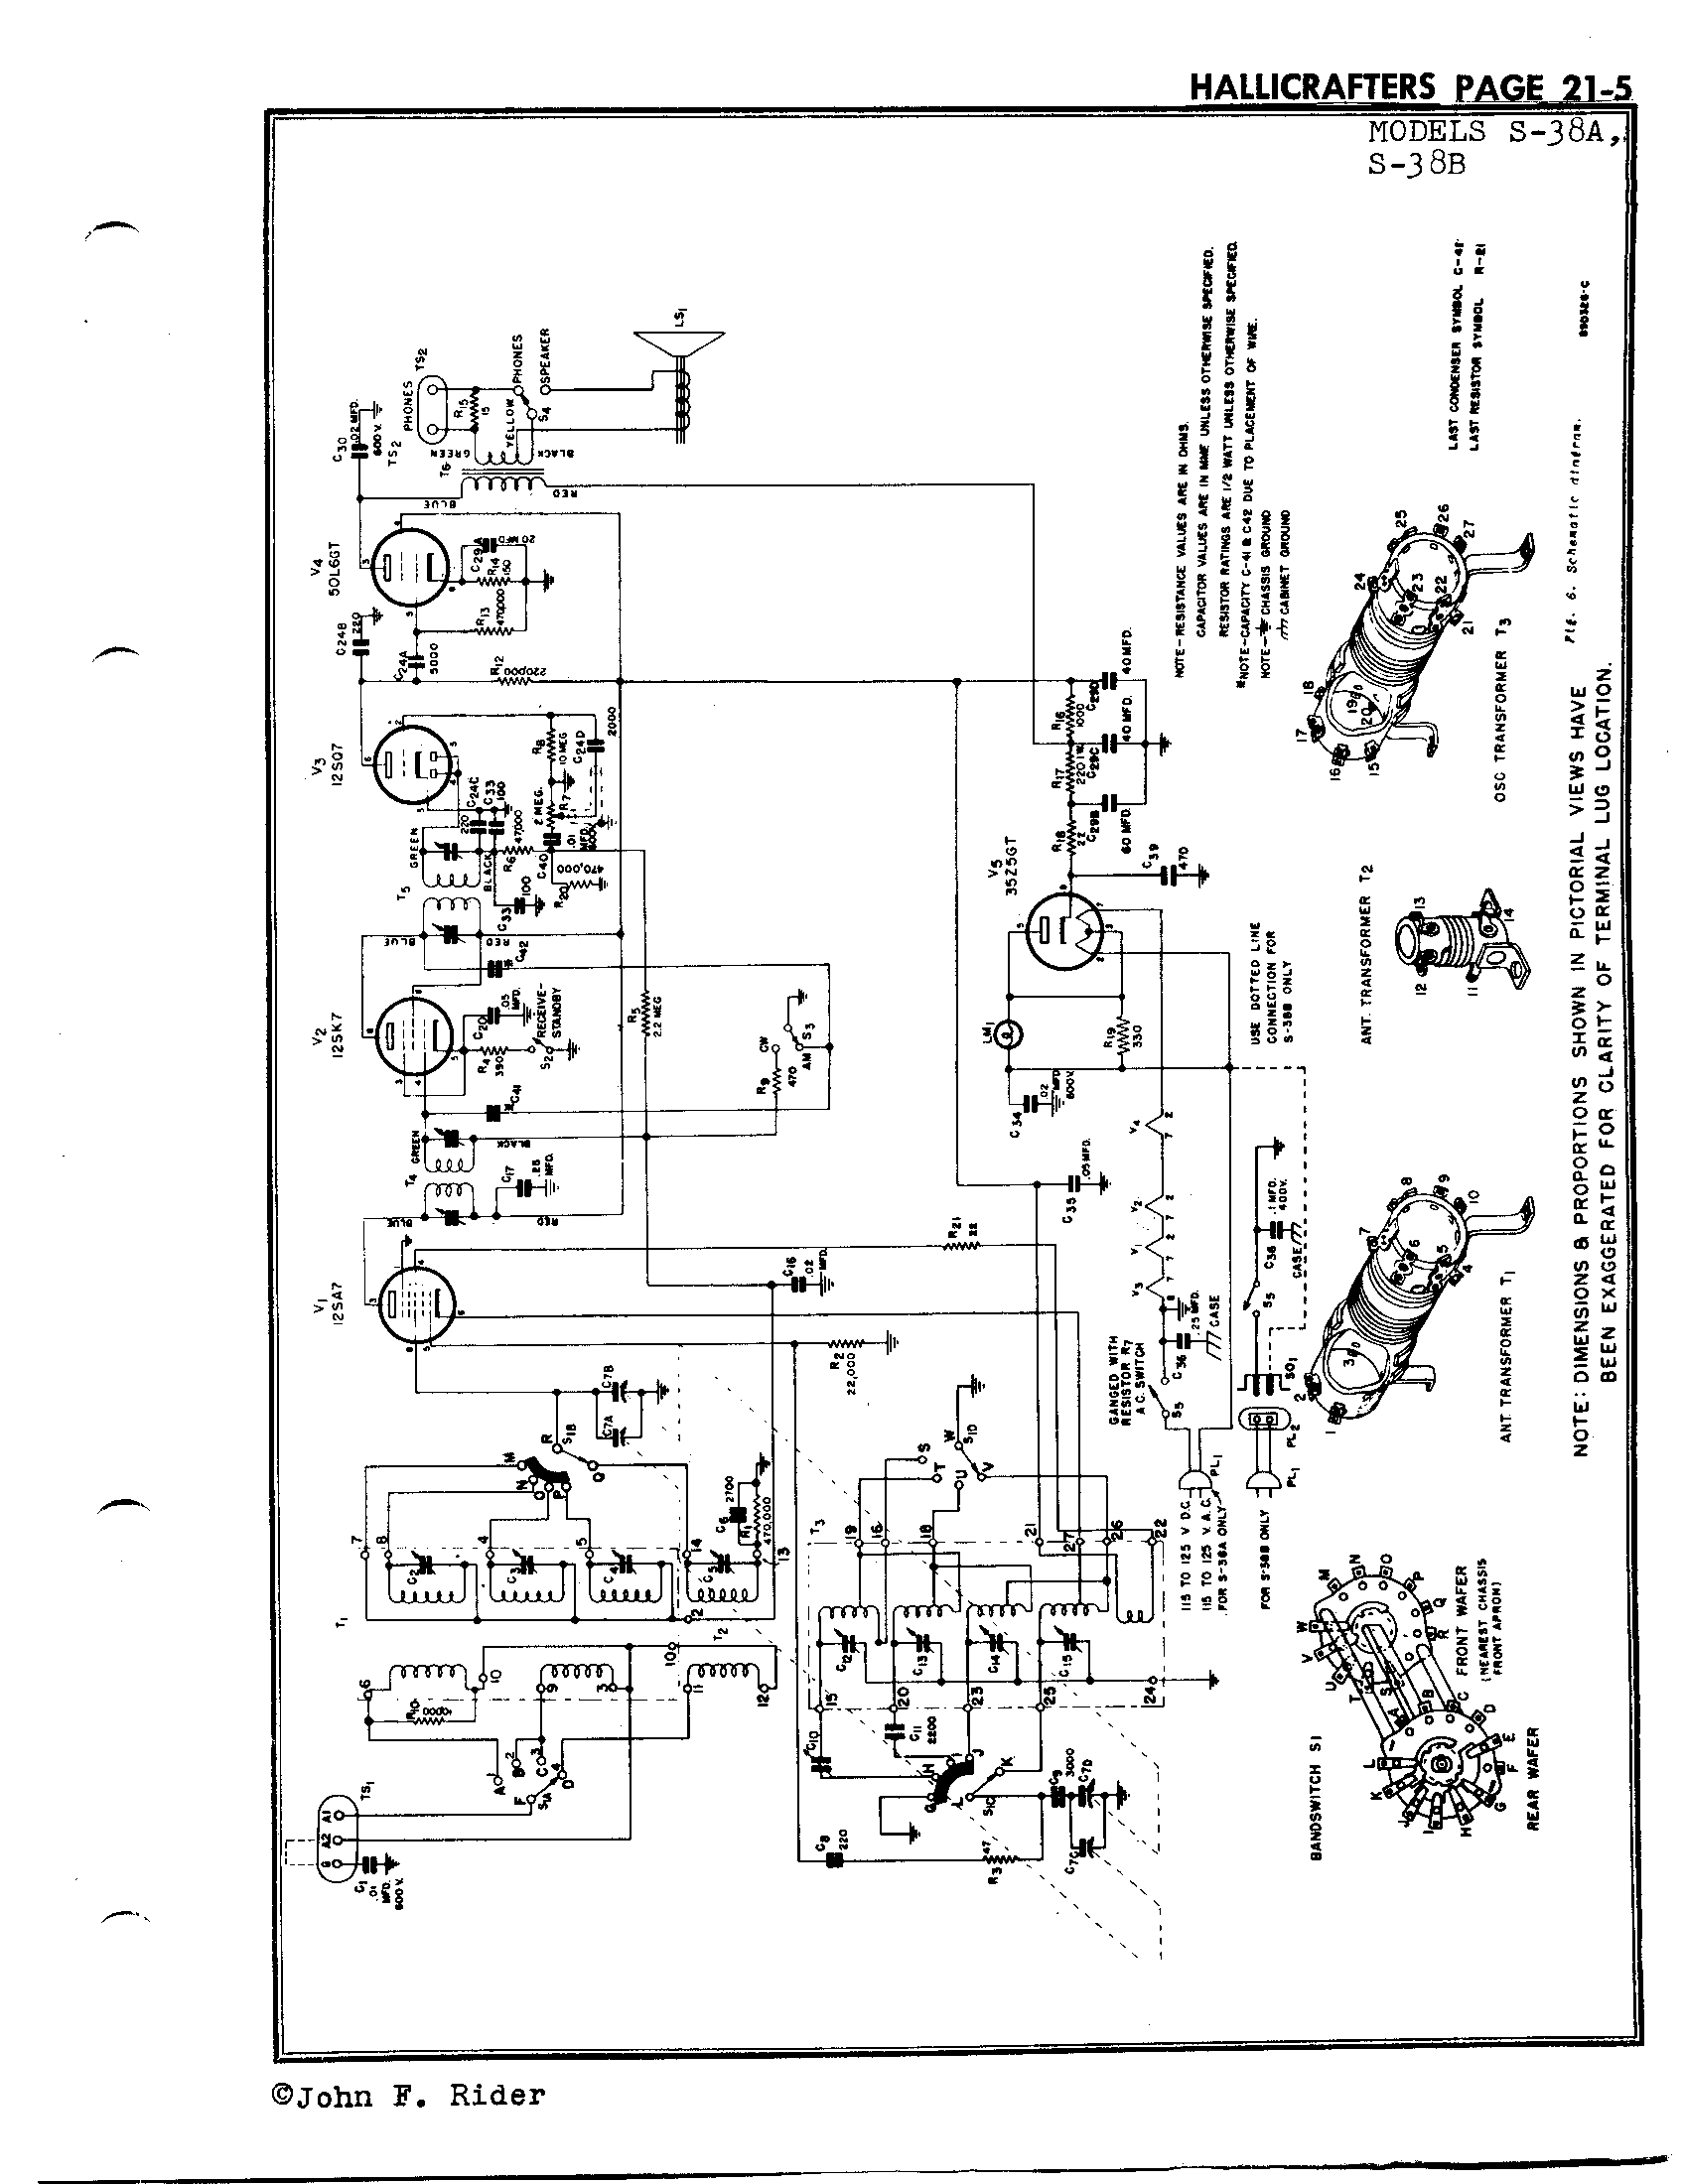 Hallicrafters, Inc. S-38B | Antique Electronic Supply on s40 hallicrafters schematic, hallicrafters sx 62 schematic, hallicrafters s 120 schematic, metal detector schematic, hallicrafters s-38e schematic, hallicrafters schematic s&w 500,